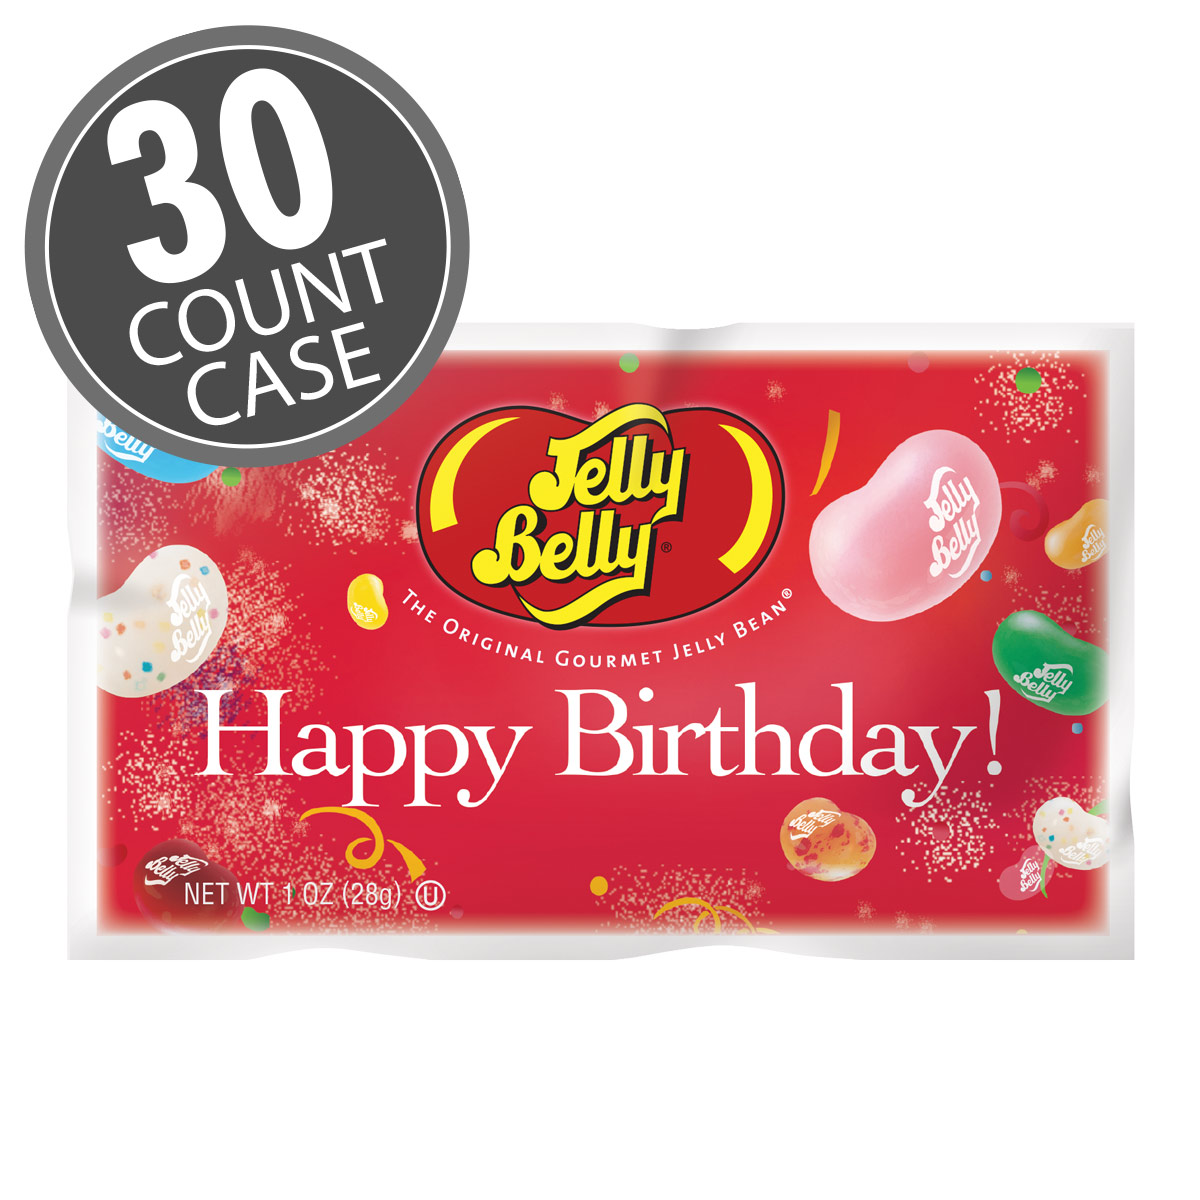 Happy Birthday Assorted Flavors Jelly Beans - 1 oz Bag - 30 Count Case